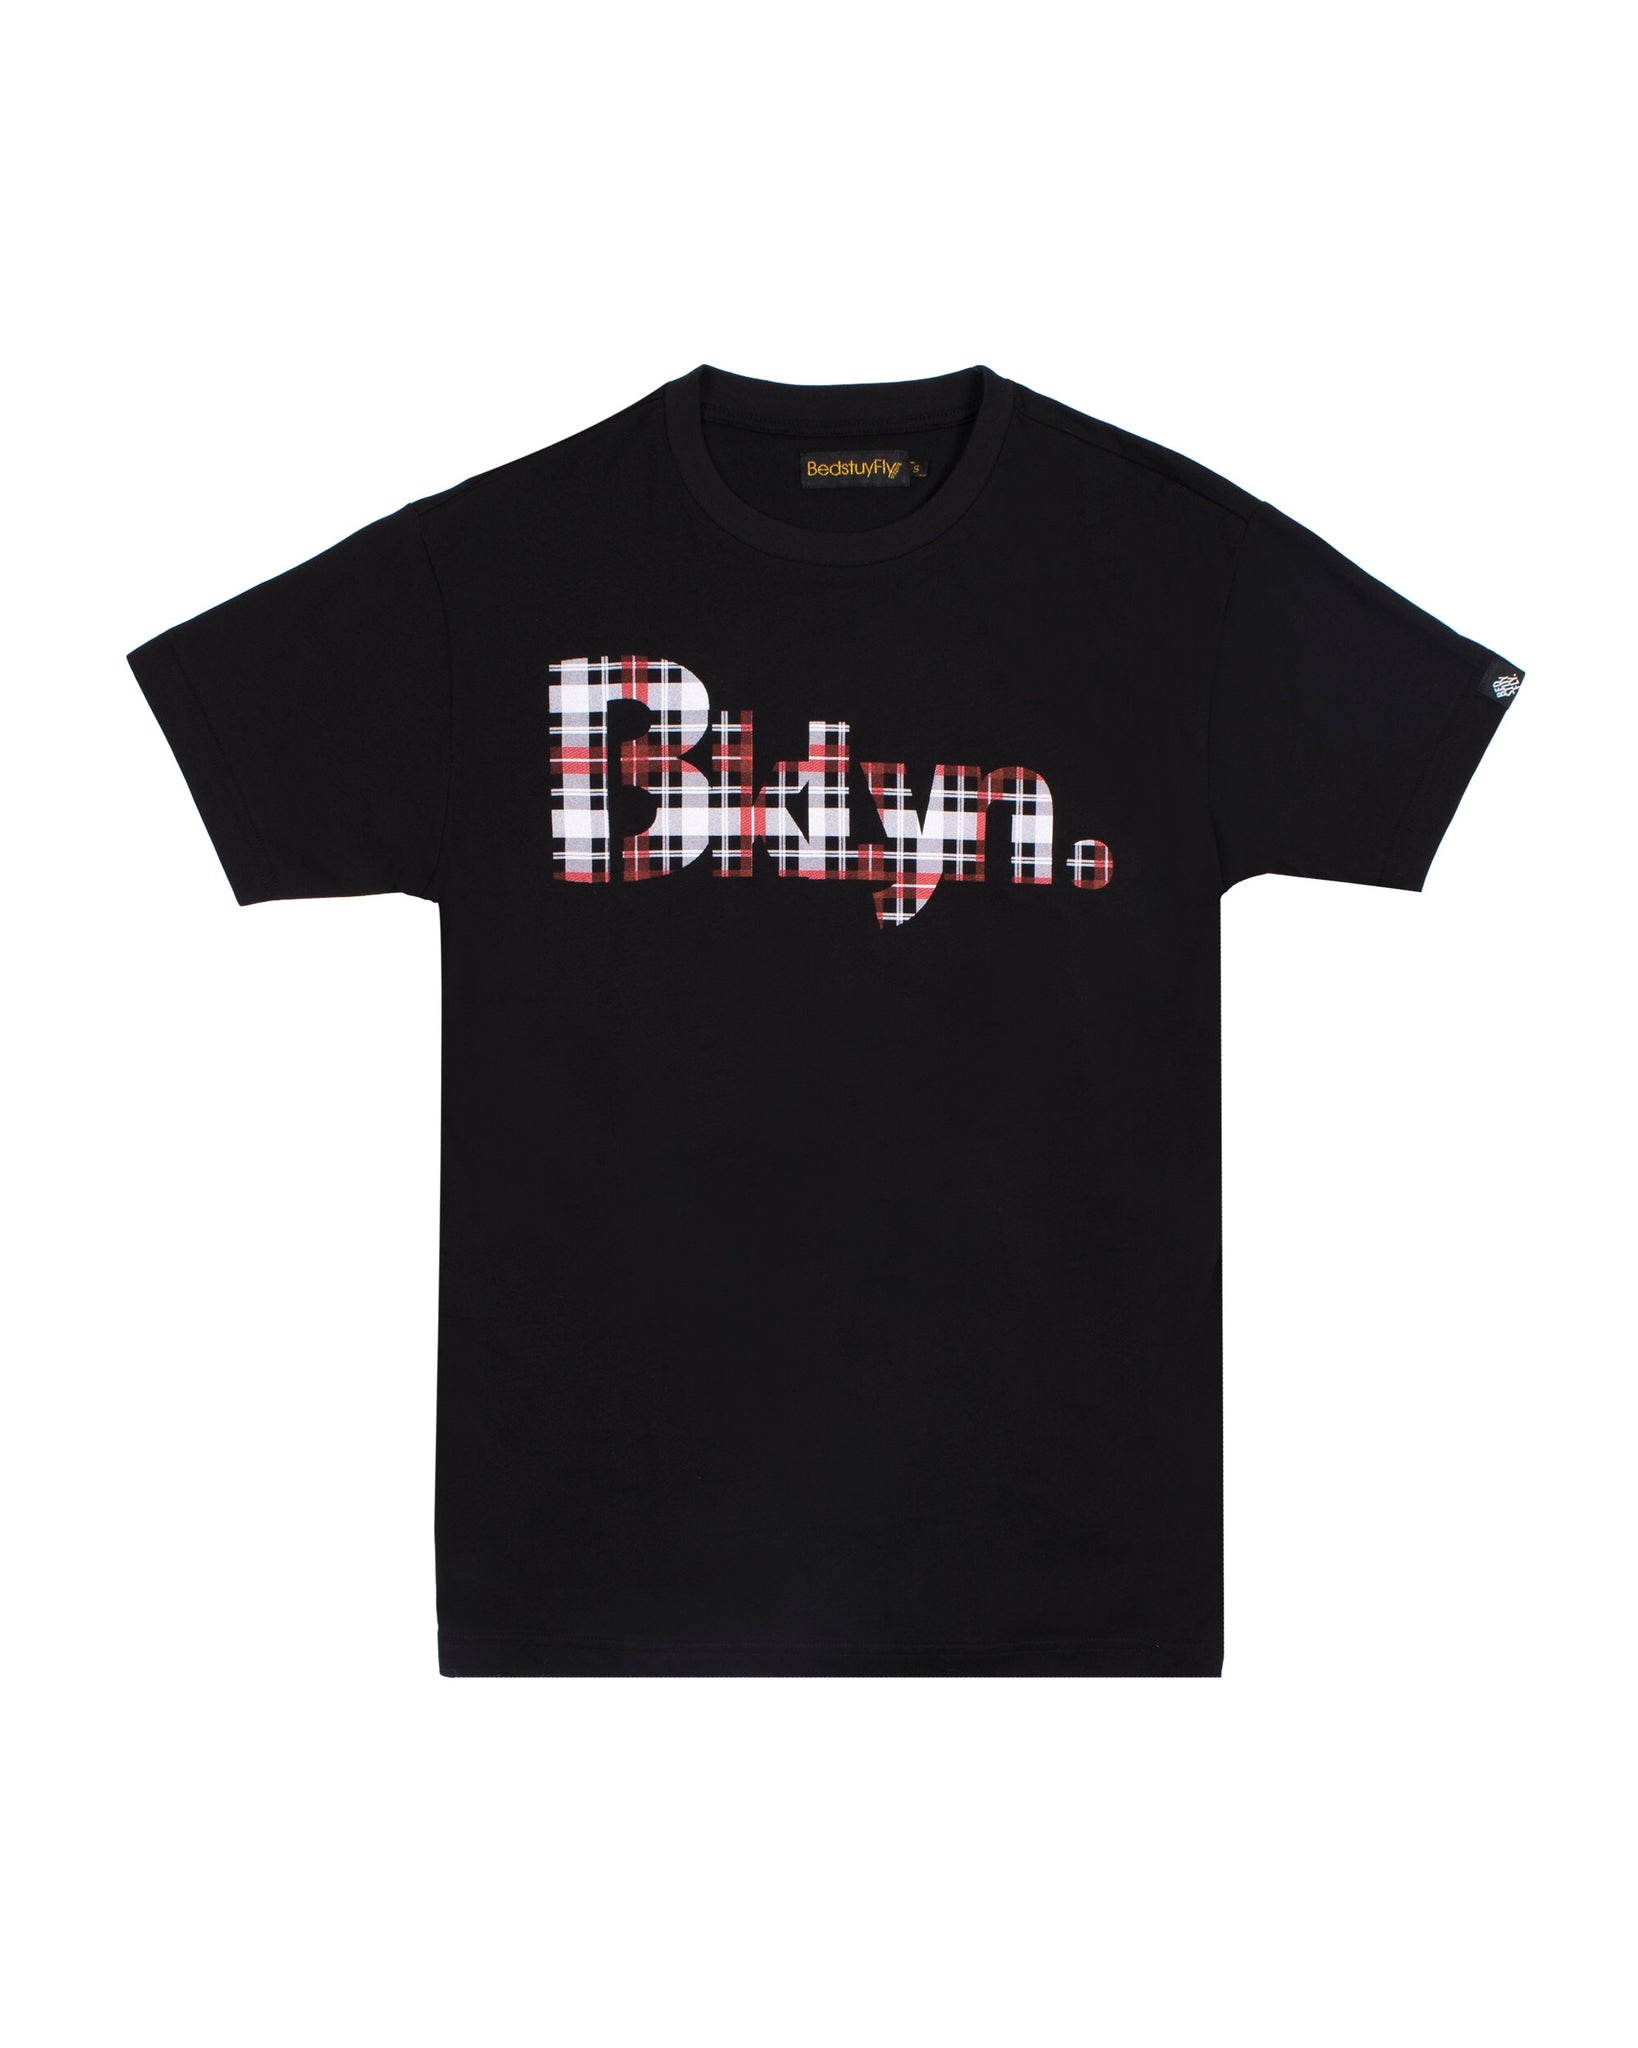 BKLYN T-SHIRT (BLK)